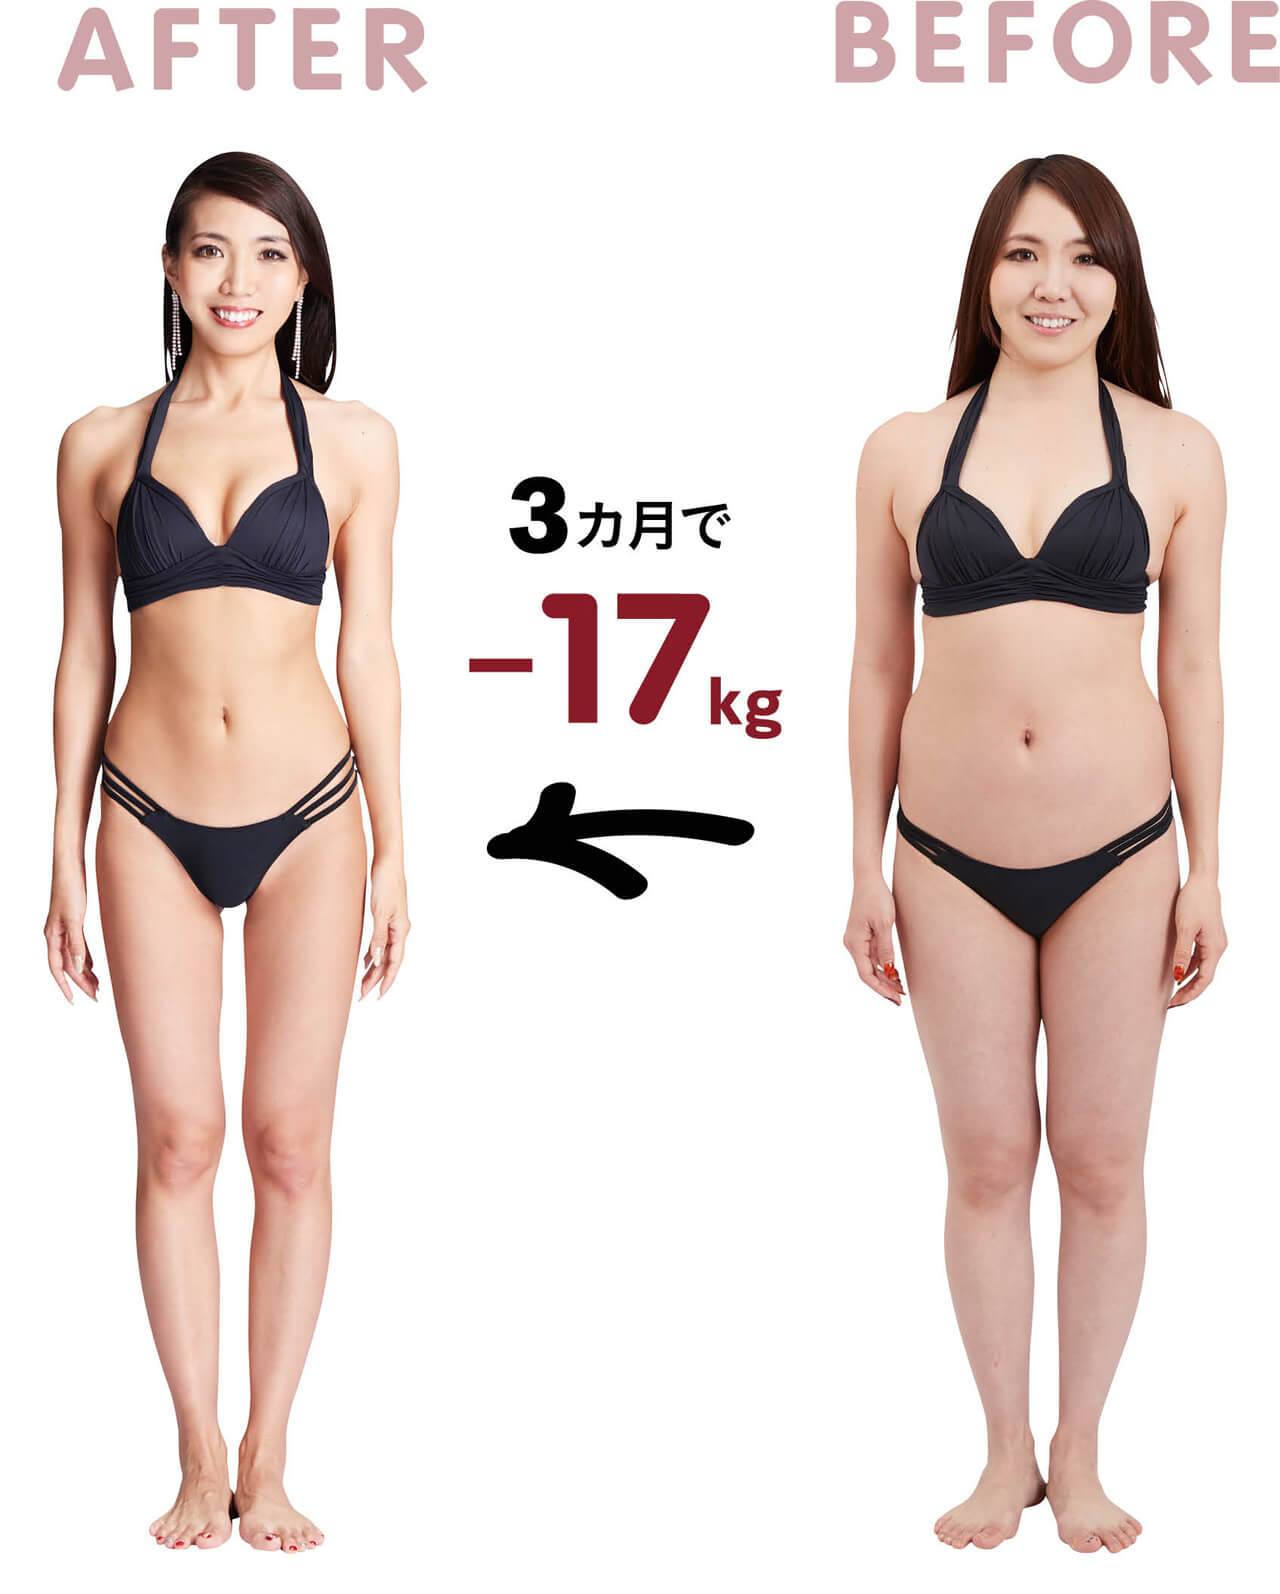 AFTER BEFORE 3カ月で-17kg